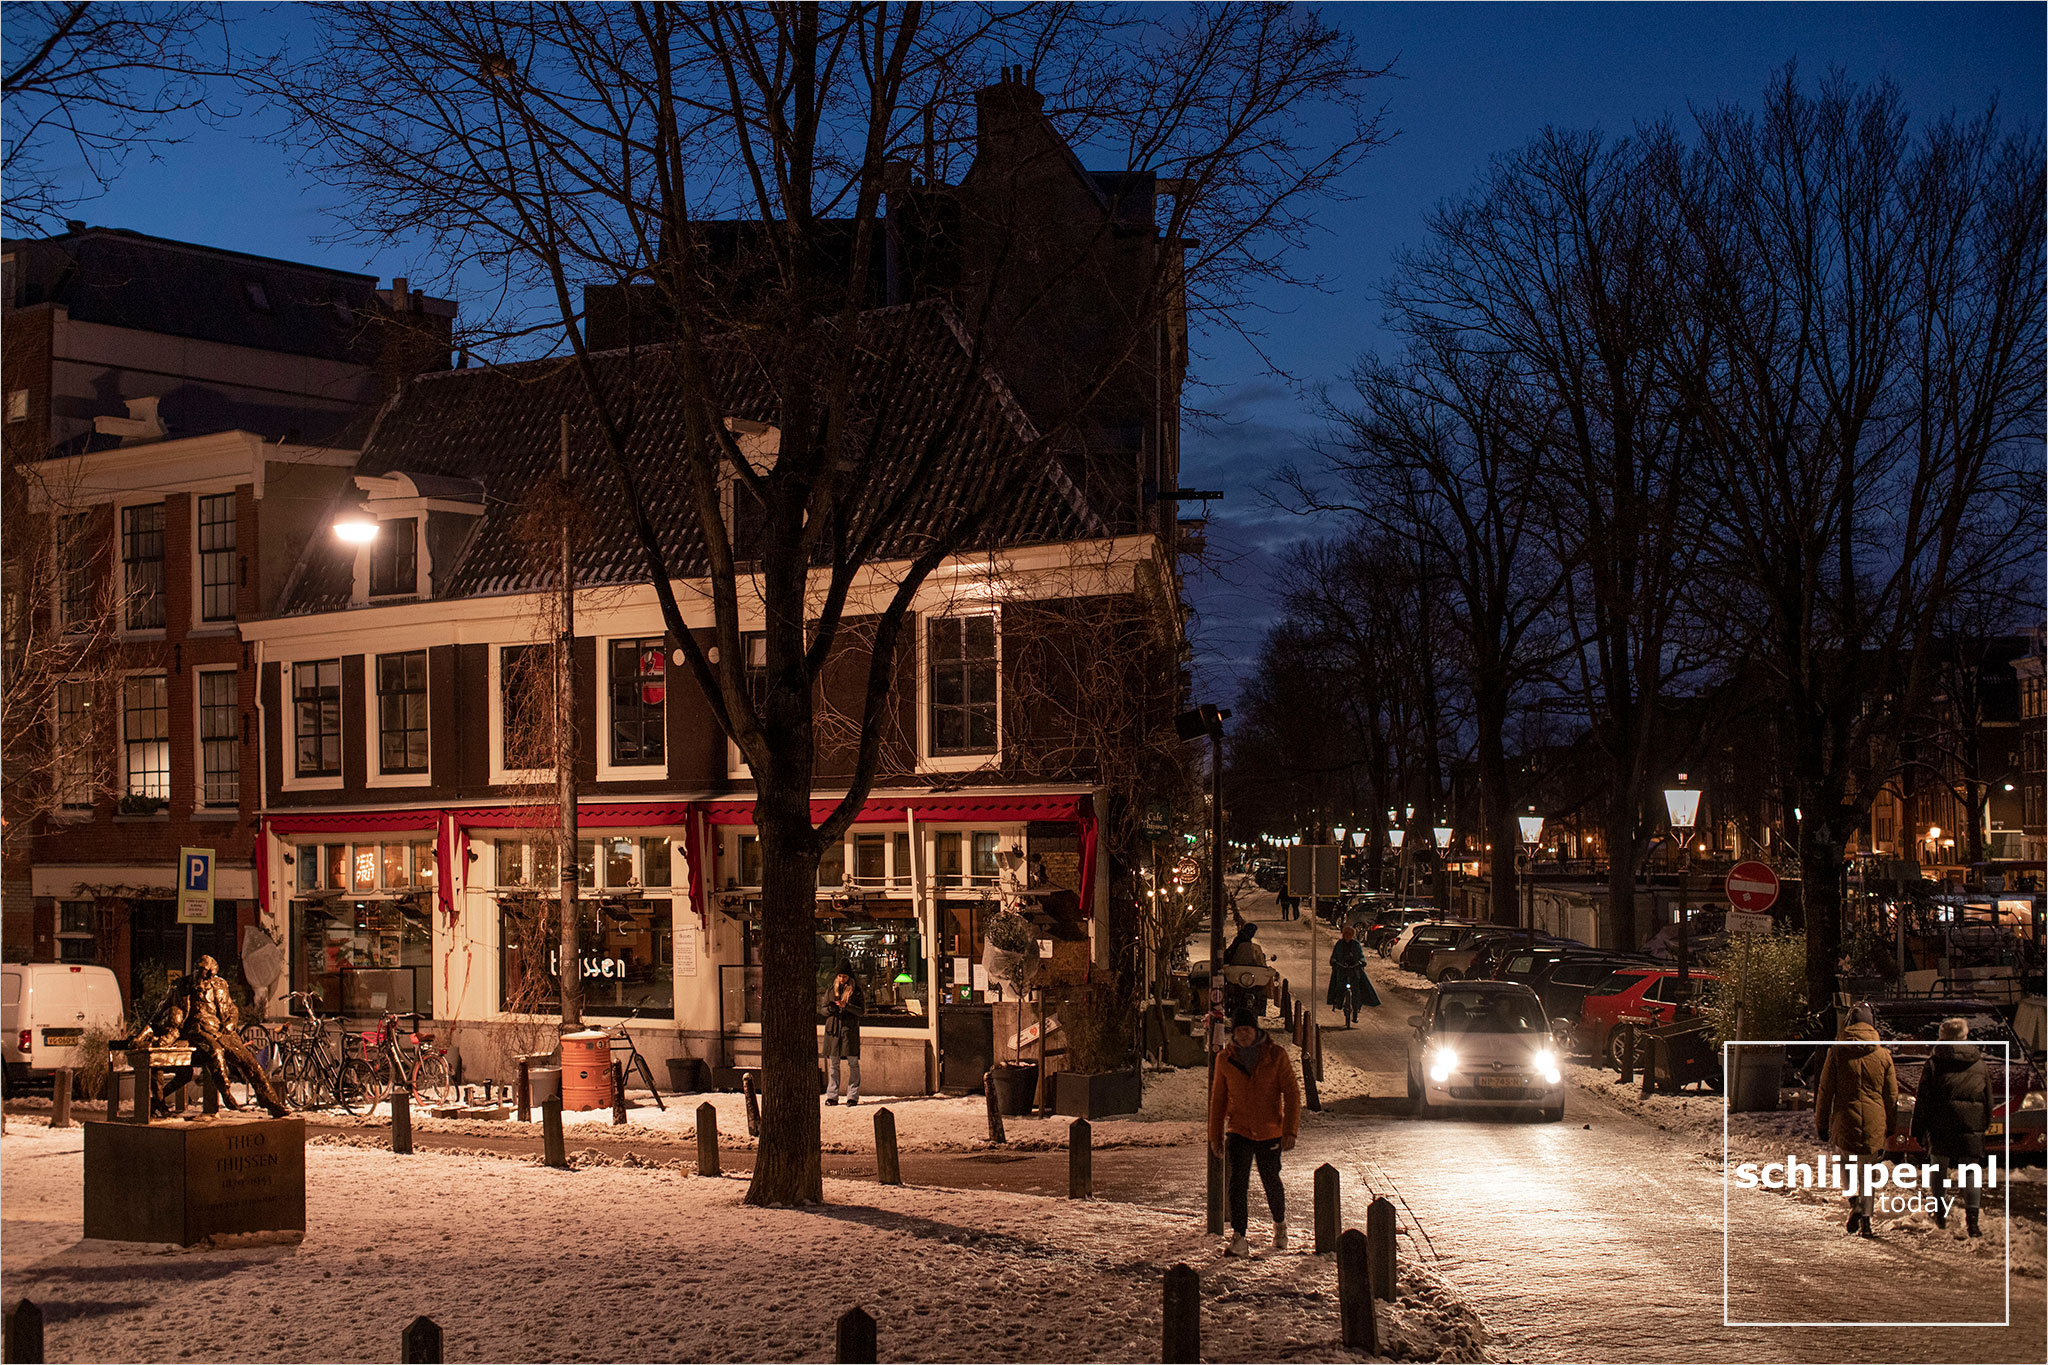 The Netherlands, Amsterdam, 10 februari 2021